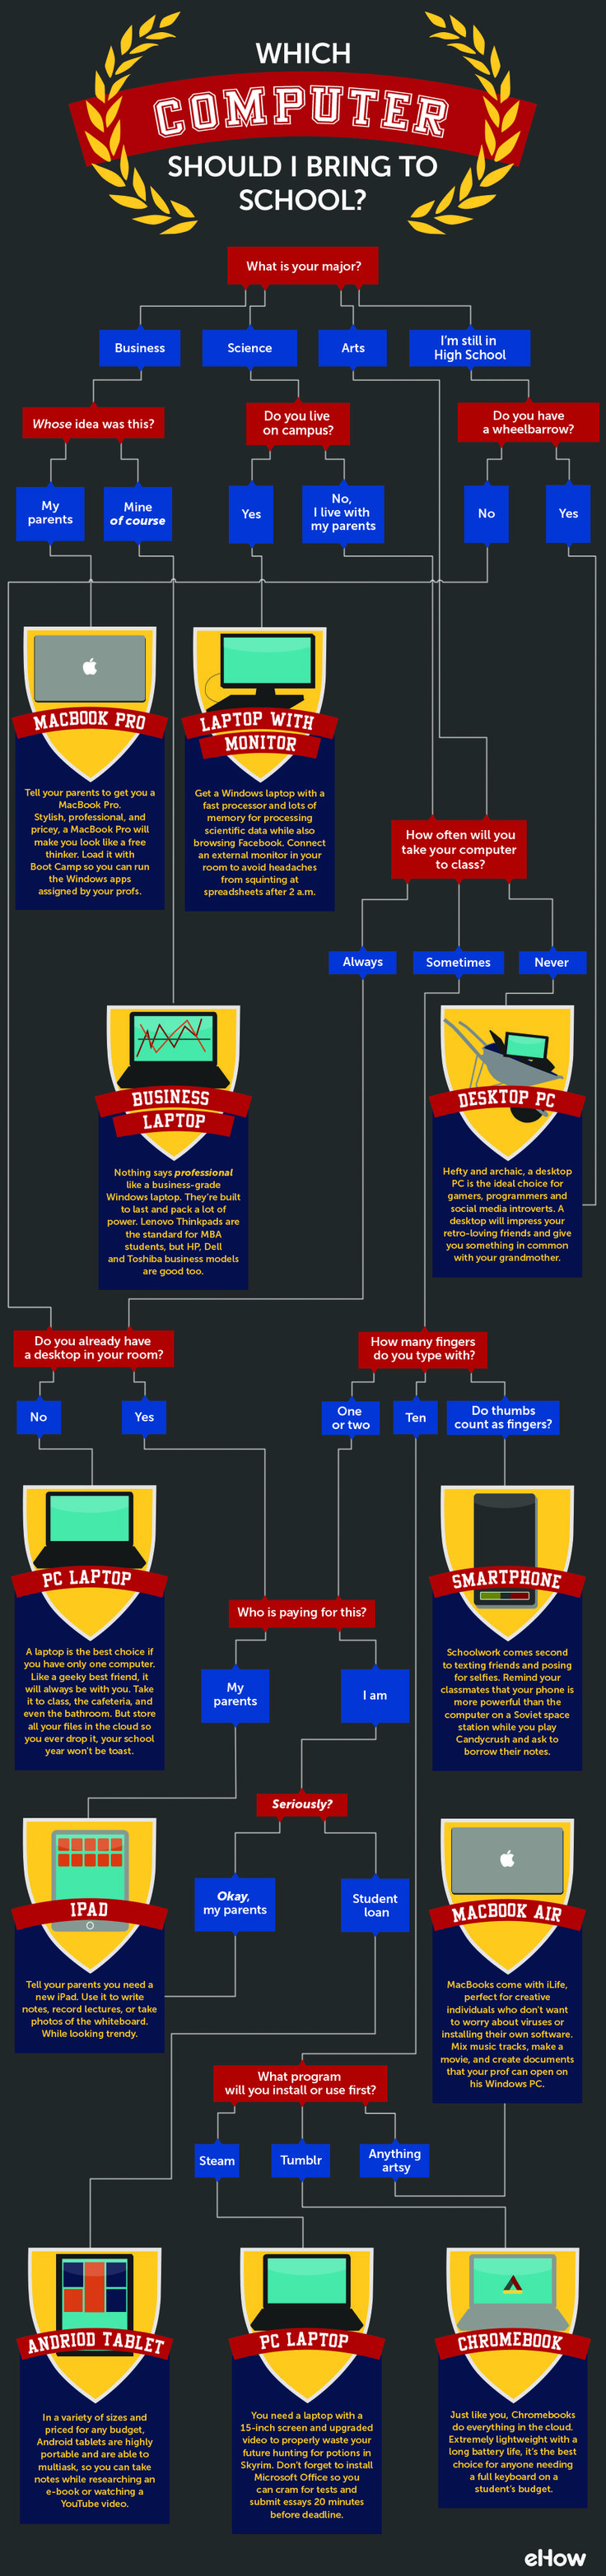 The Right Kind of Computer to Take to School [Infographic] - Follow the decision tree to see what kind of computer is right for your needs at school, from desktop PC to Macbook to iPad.